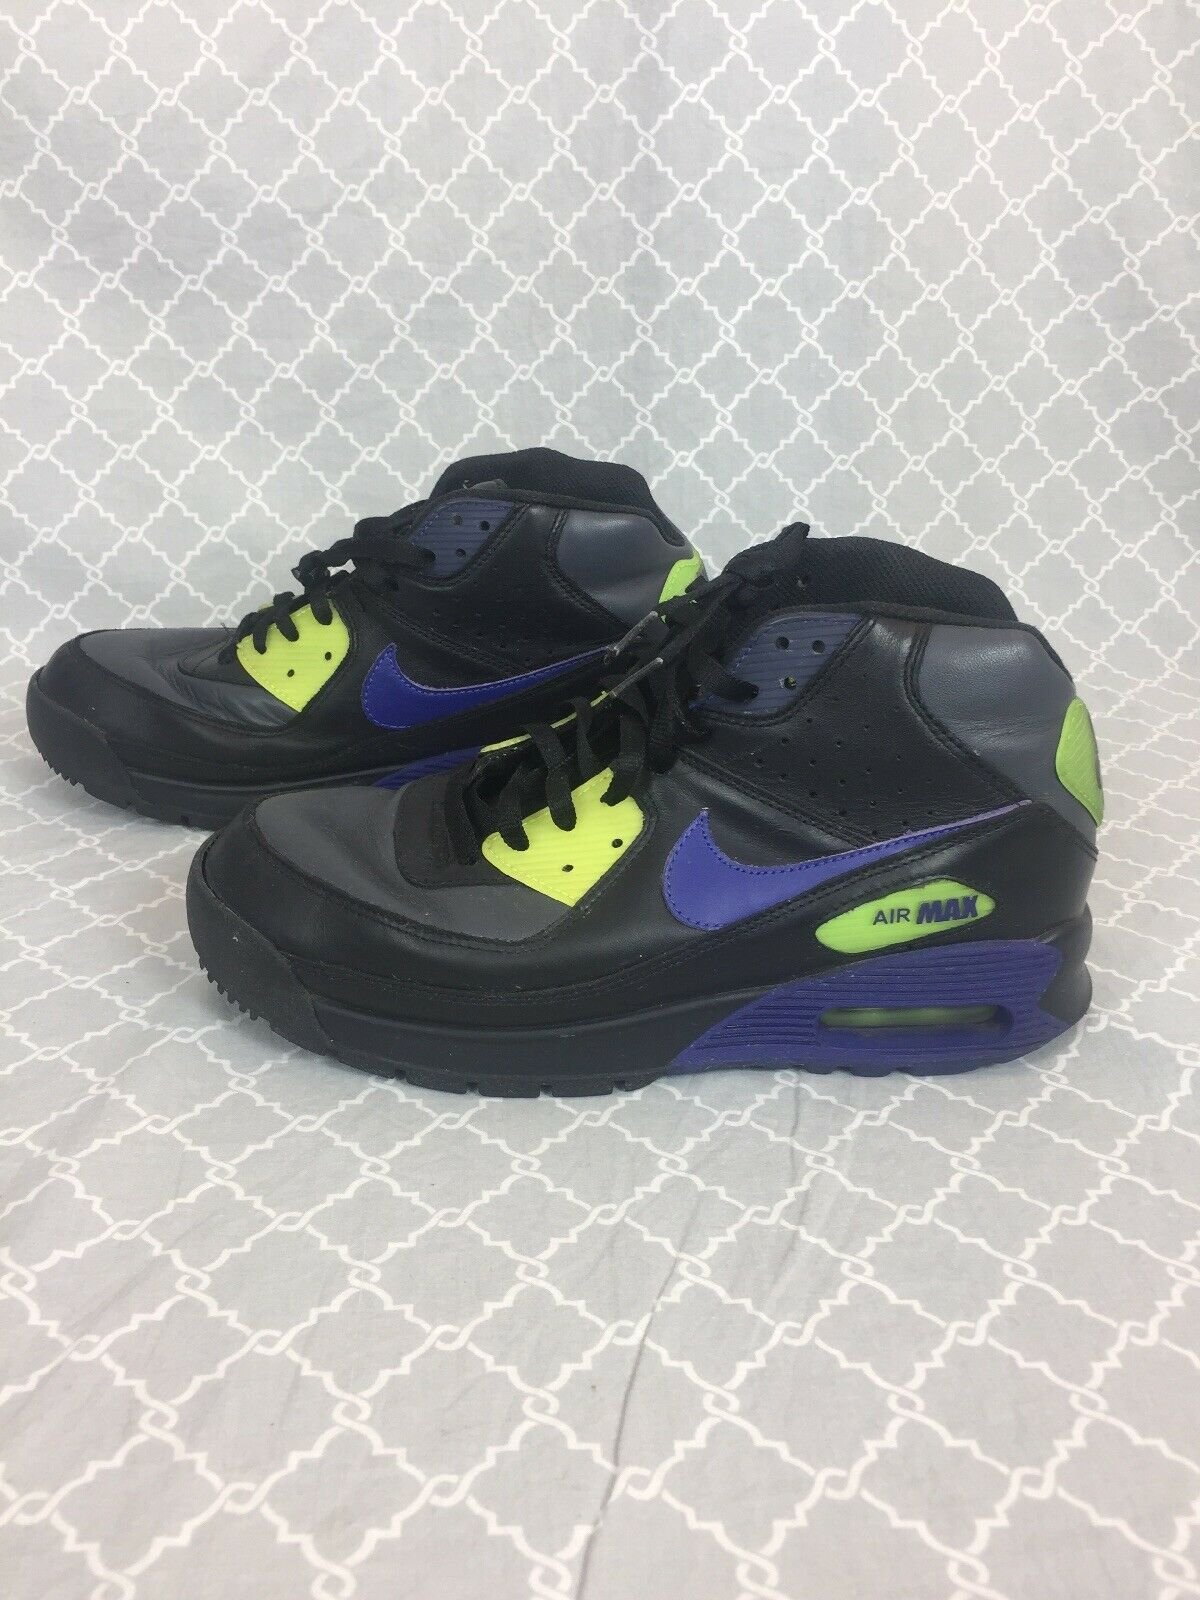 Nike Air Max Airmax 90 Boots, Black Purple Yellow size 9.5, 316339-041